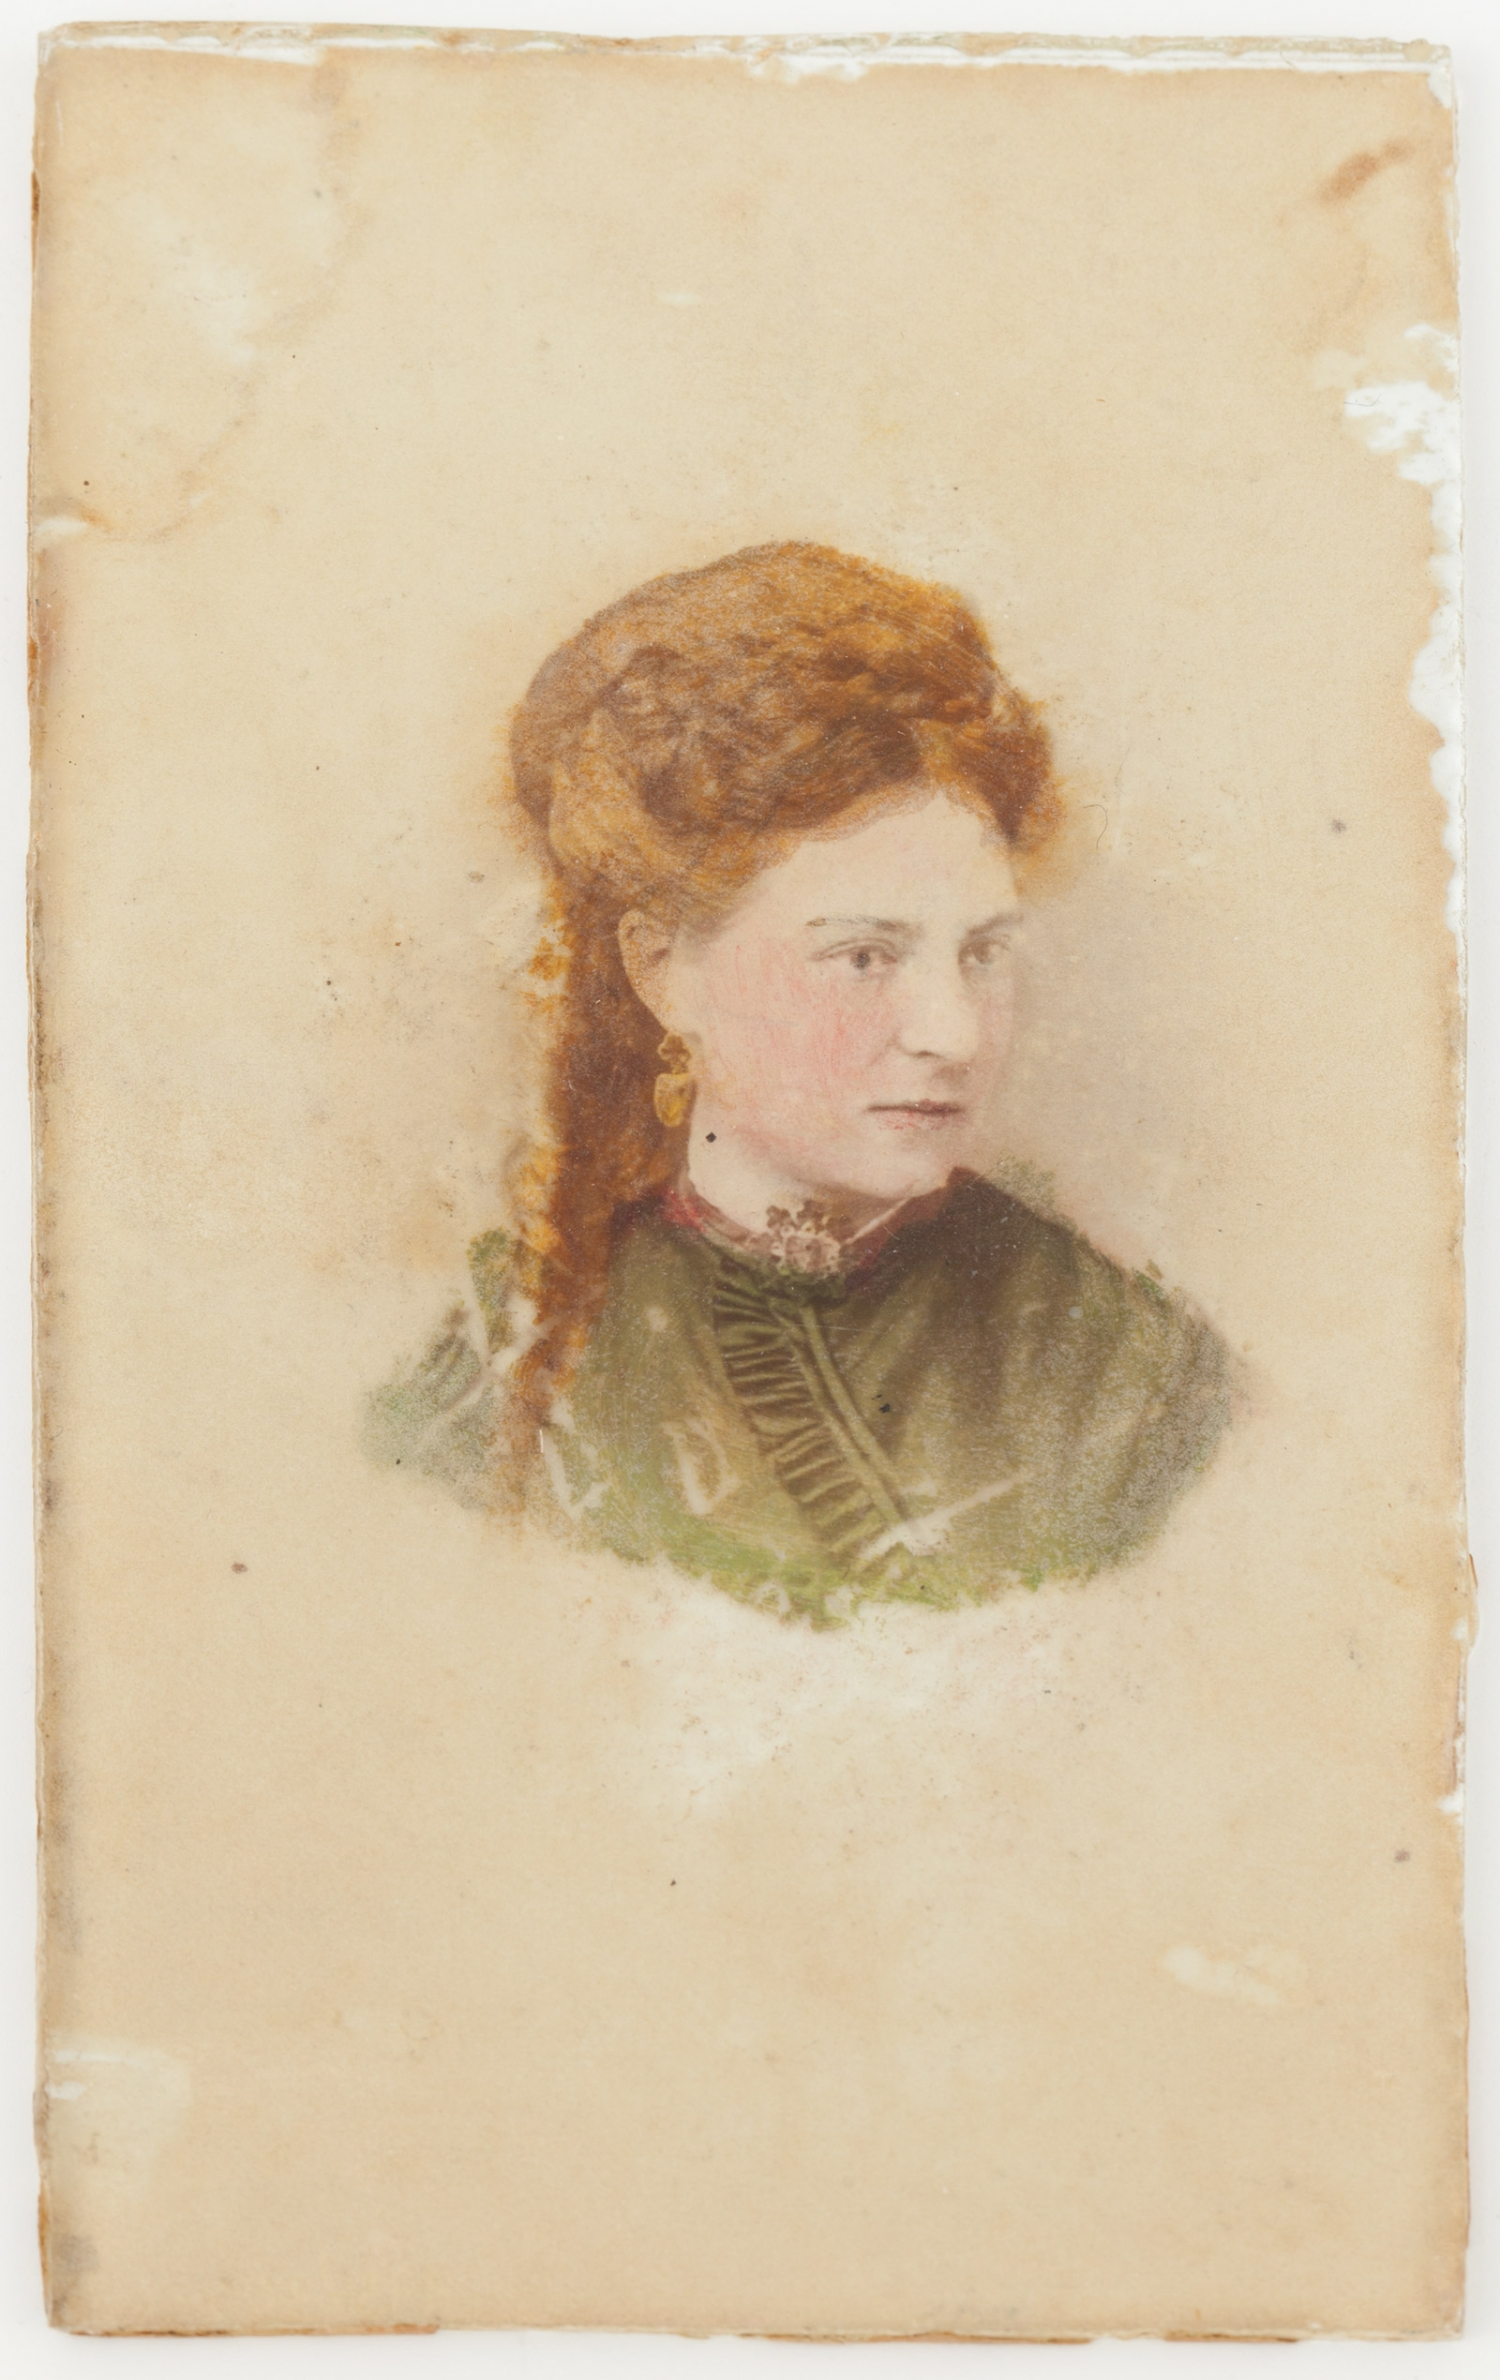 A photograph, hand-coloured using the crystoleum process, depicts a radiantly red-haired young woman, dressed in green